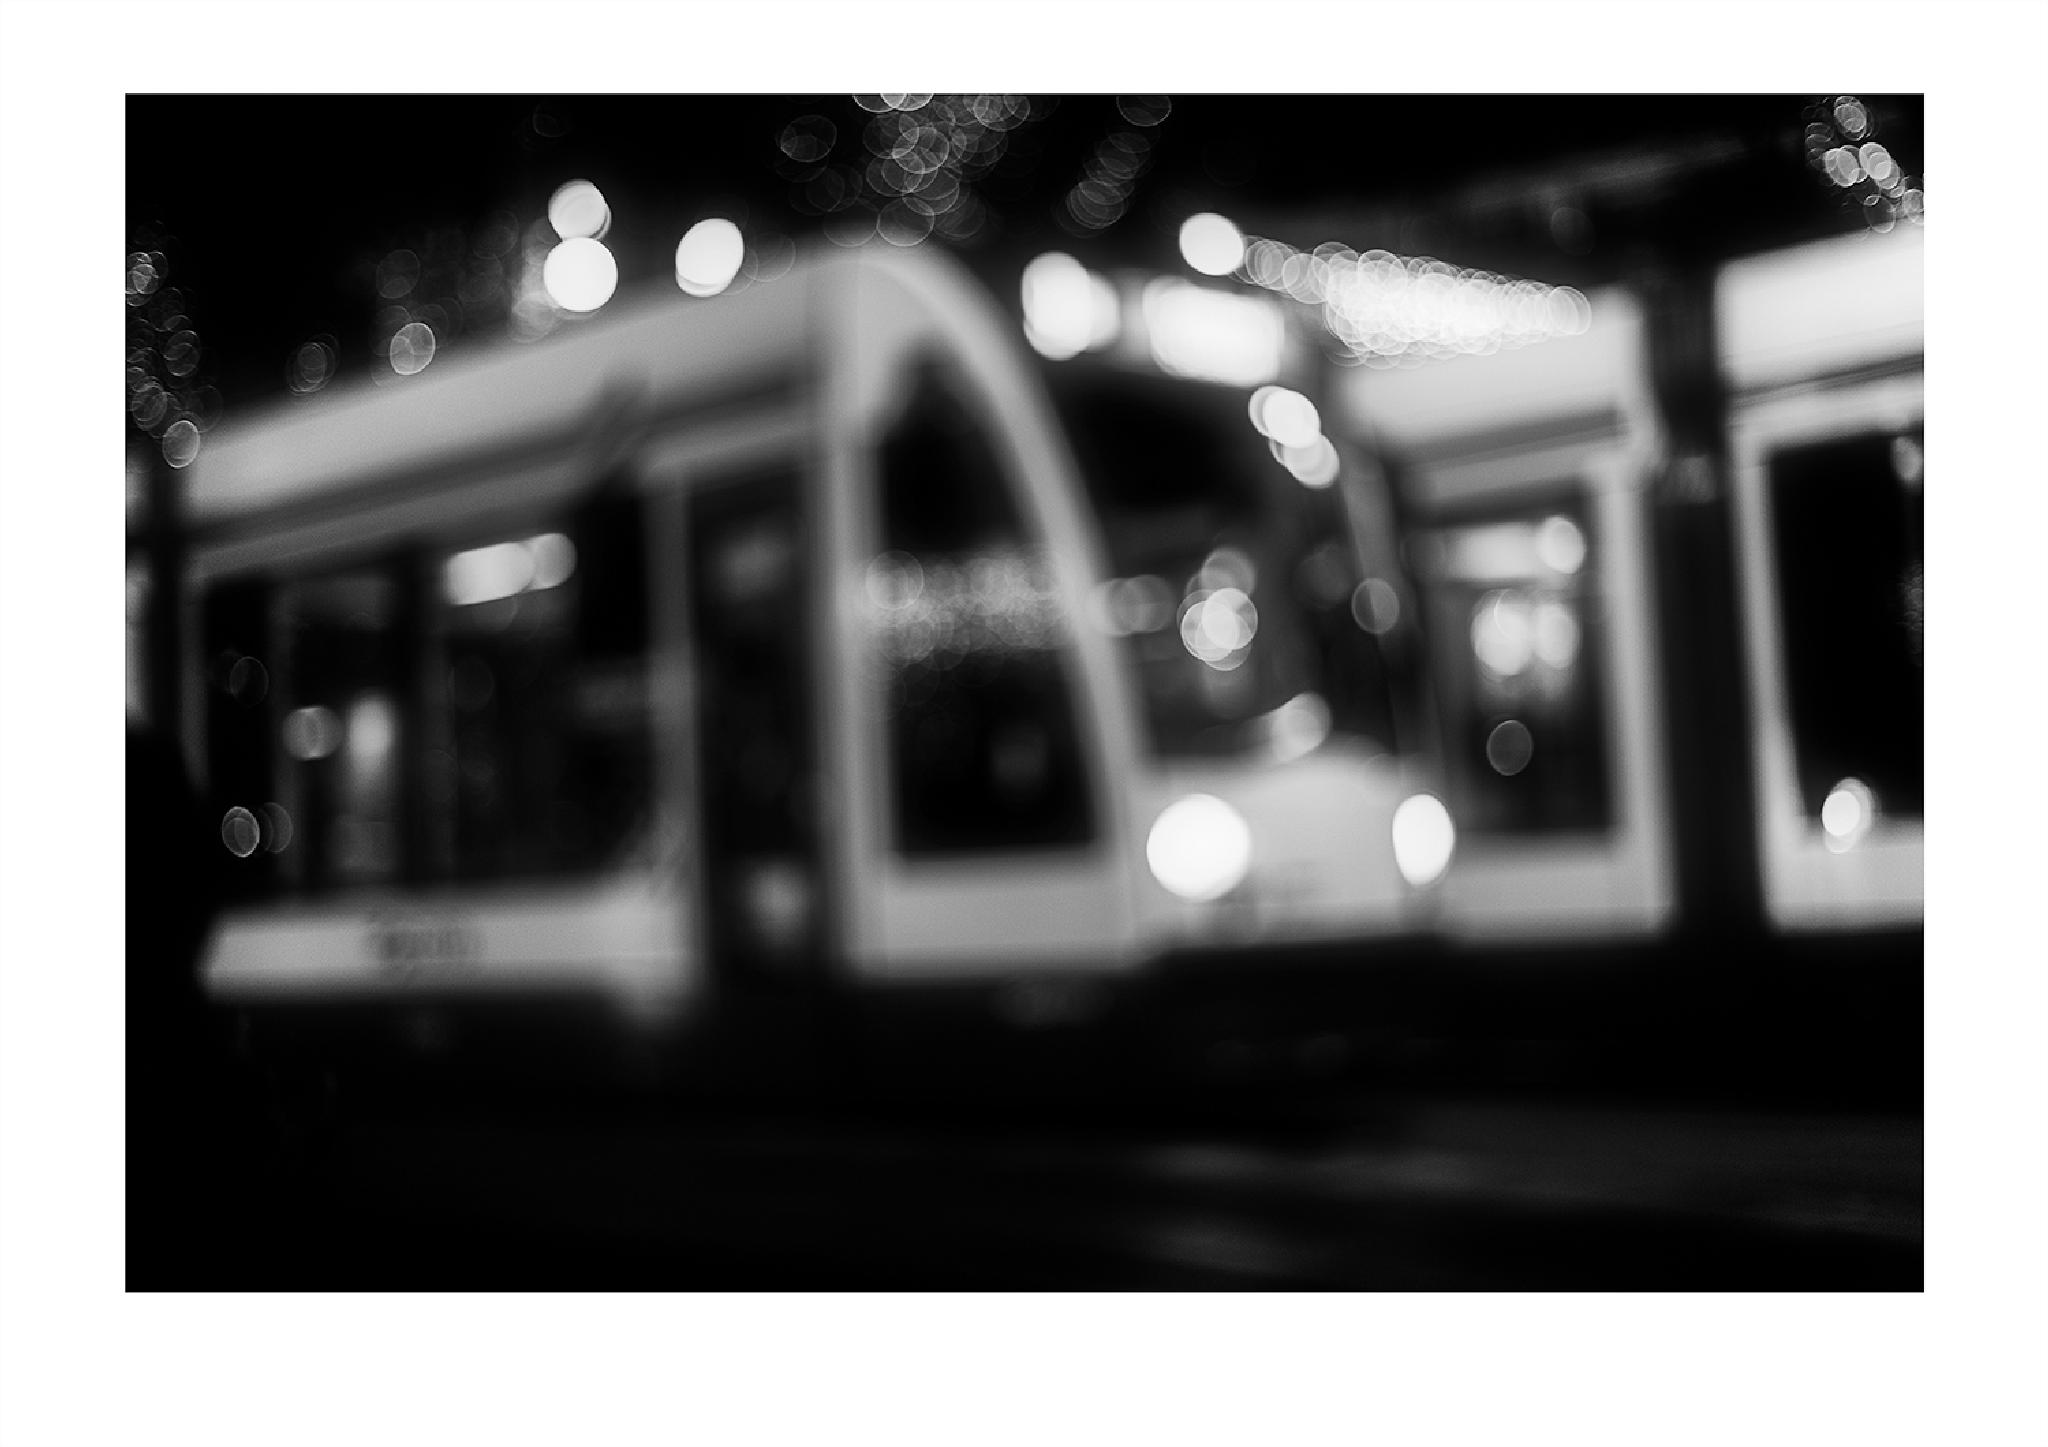 Tram Amstellois by Mickael.G photographie